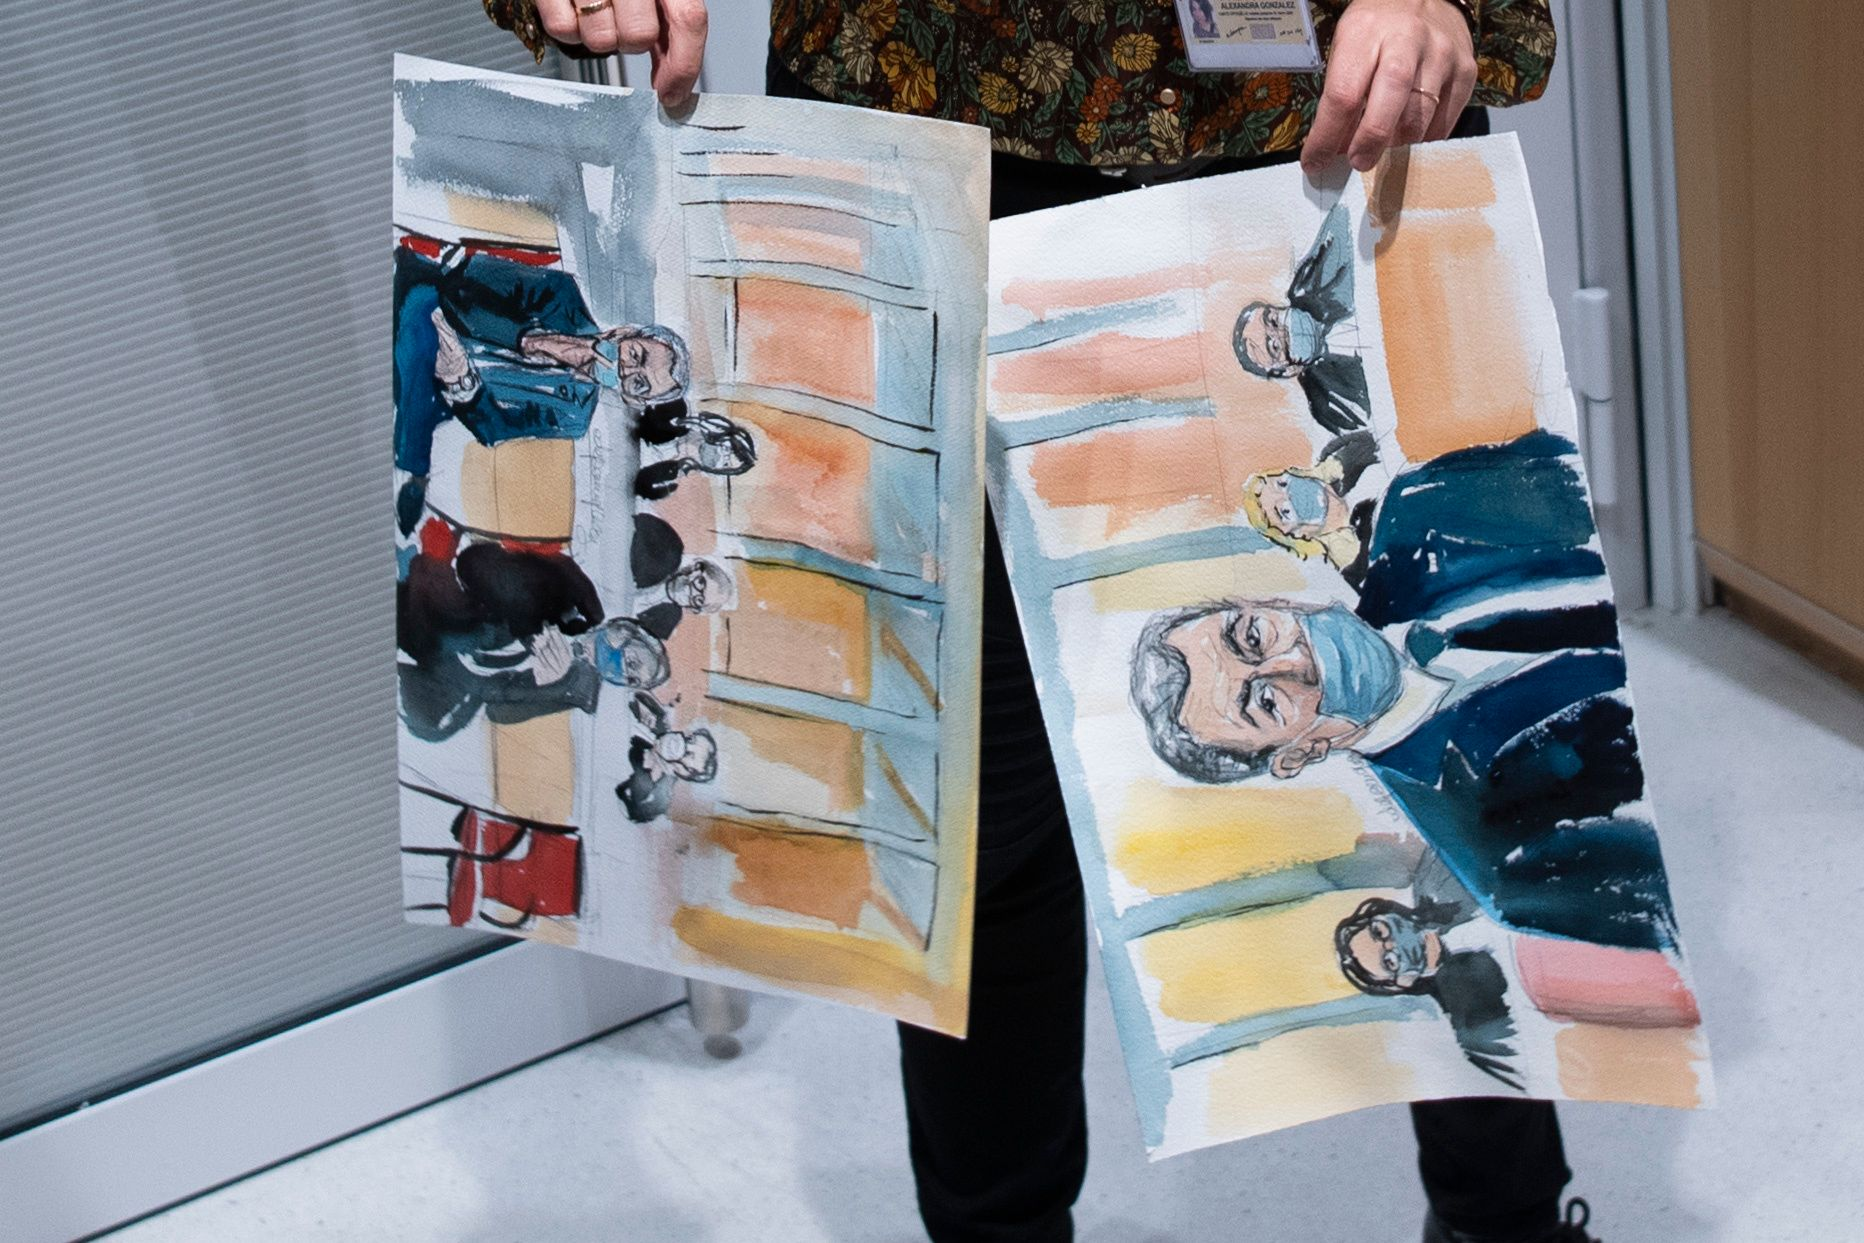 Court drawings of former French president Nicholas Sarkozy and his attorney